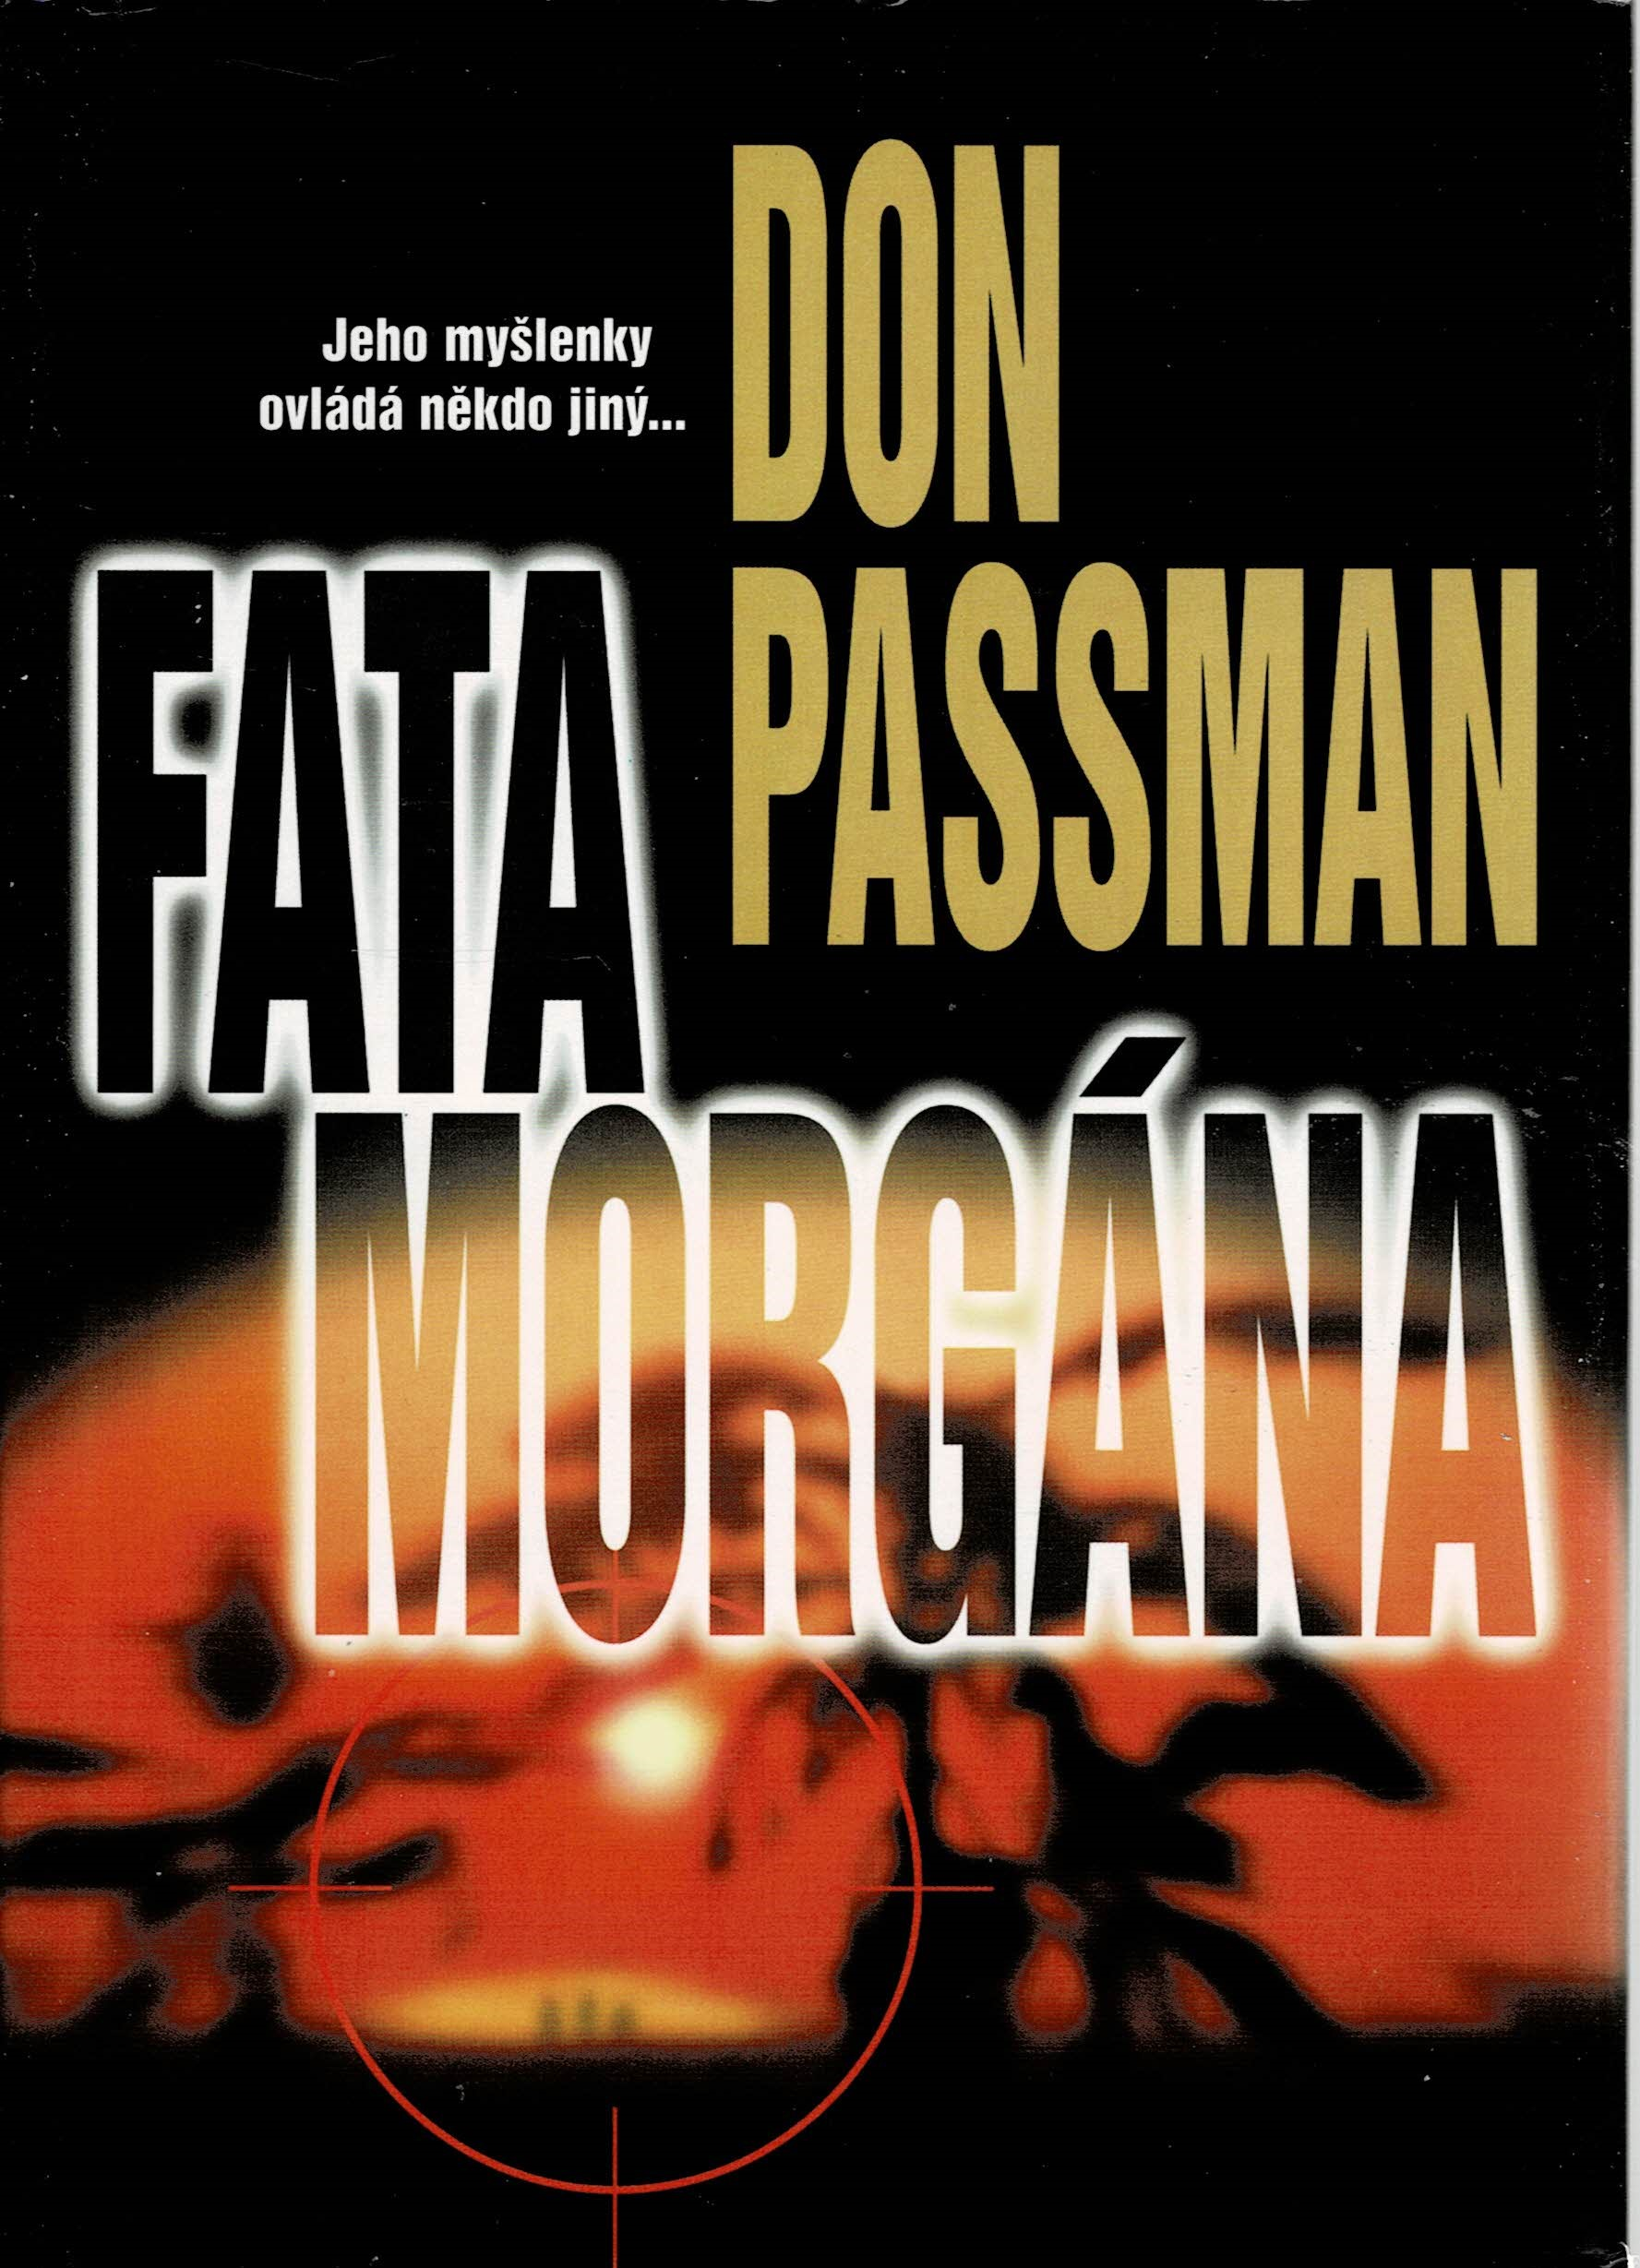 Passman, Don: Fata morgána